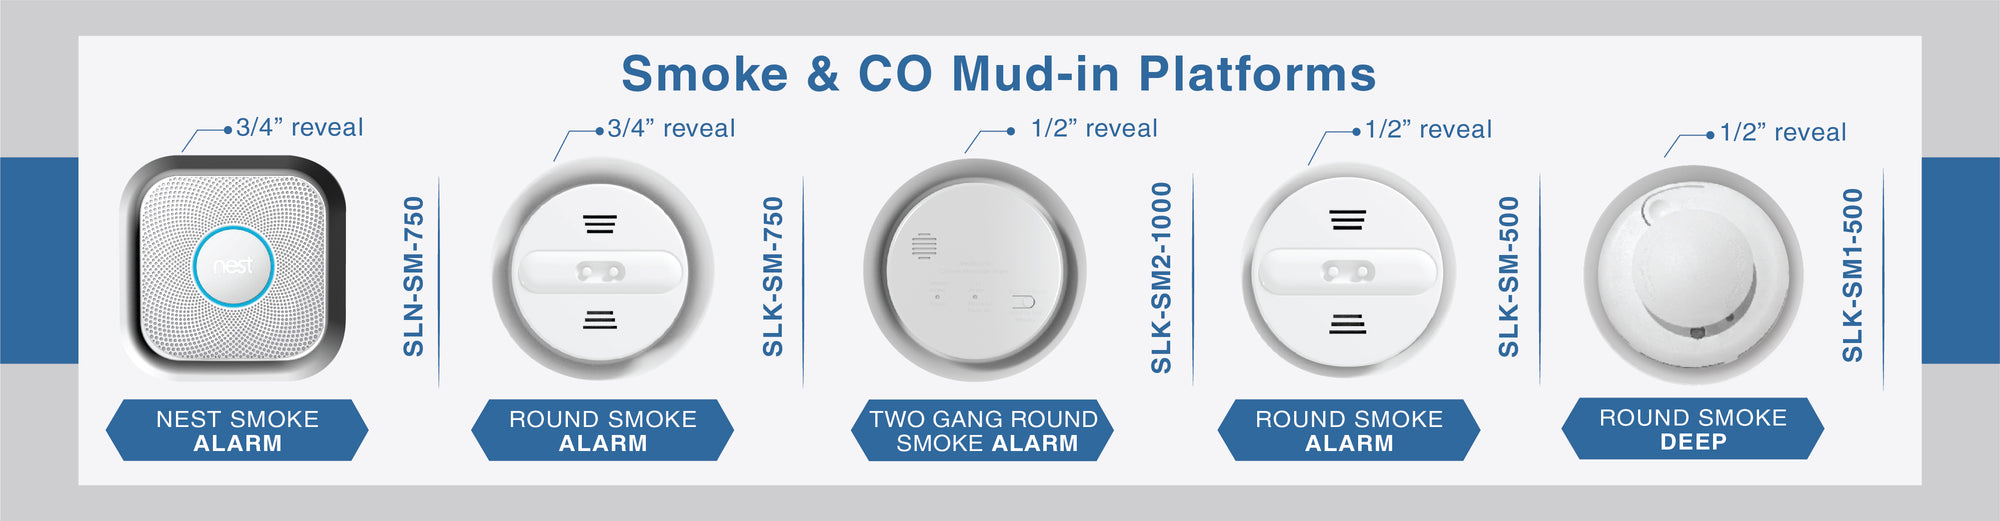 Smoke & CO Mud-in Platforms